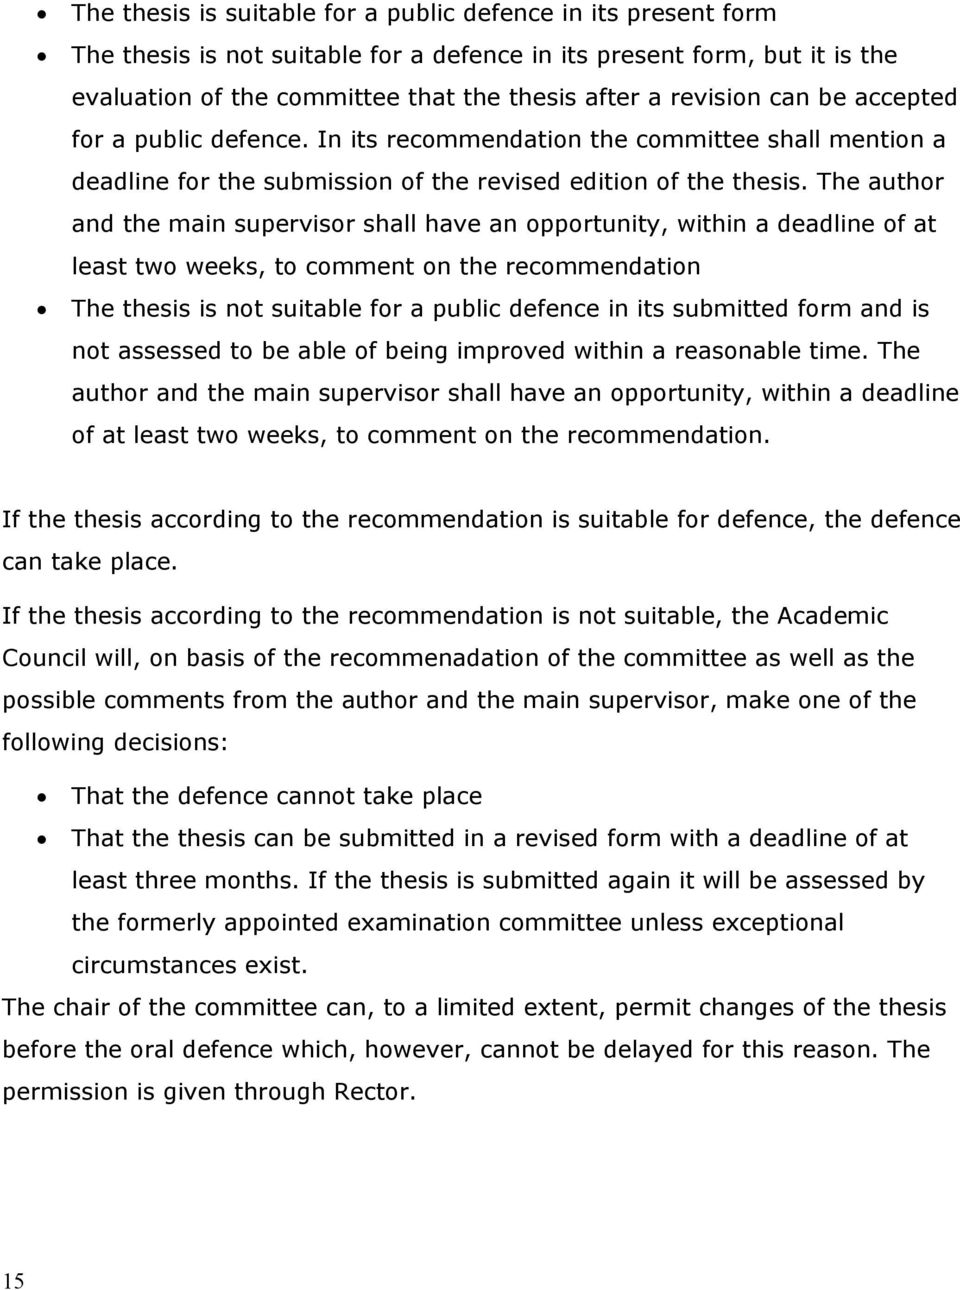 The author and the main supervisor shall have an opportunity, within a deadline of at least two weeks, to comment on the recommendation The thesis is not suitable for a public defence in its